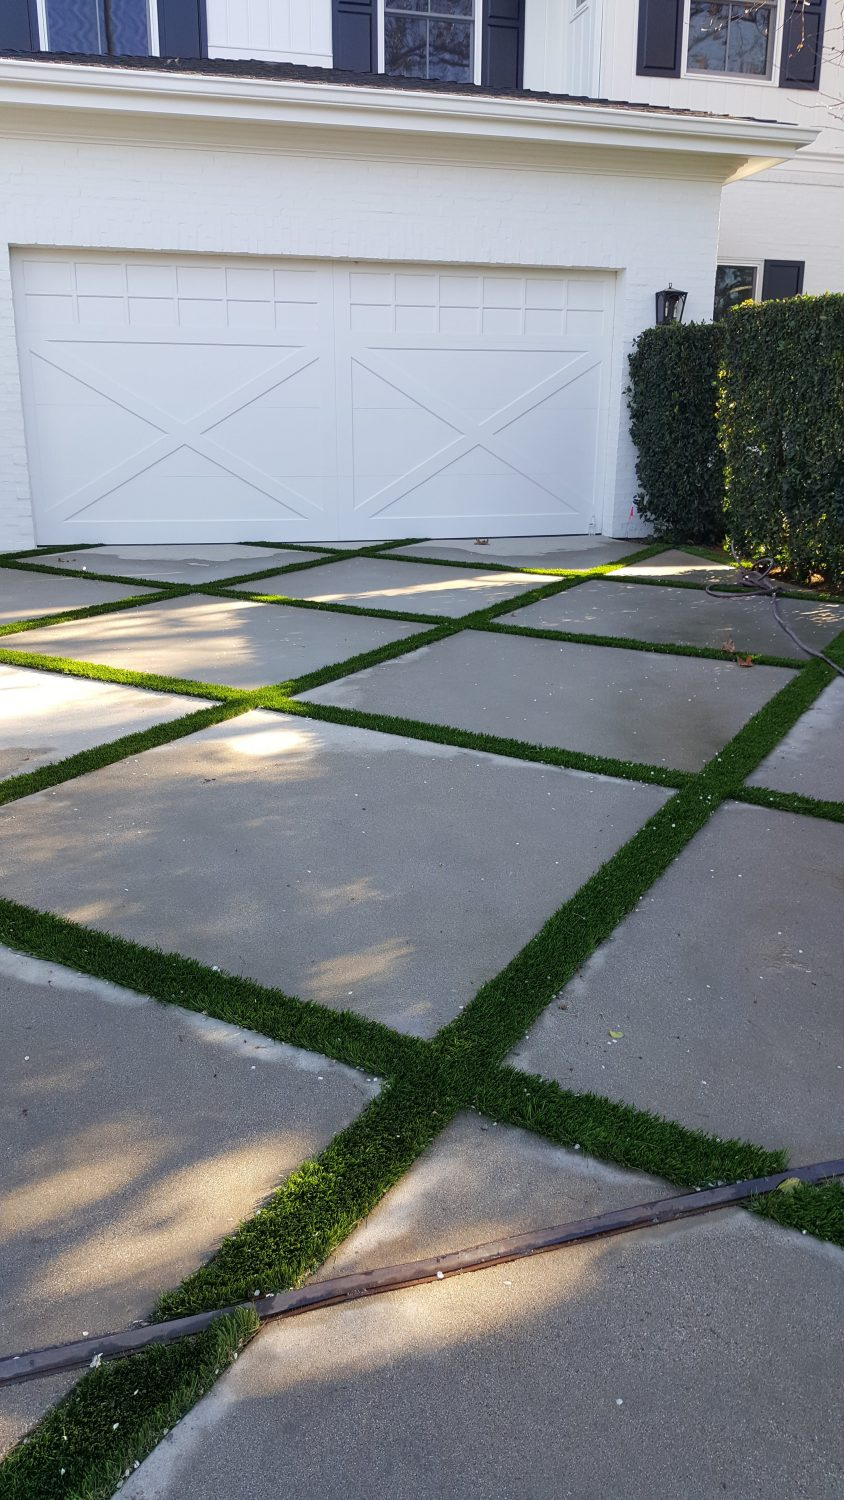 Image of Driveway Strip Turf In Front Of Garage